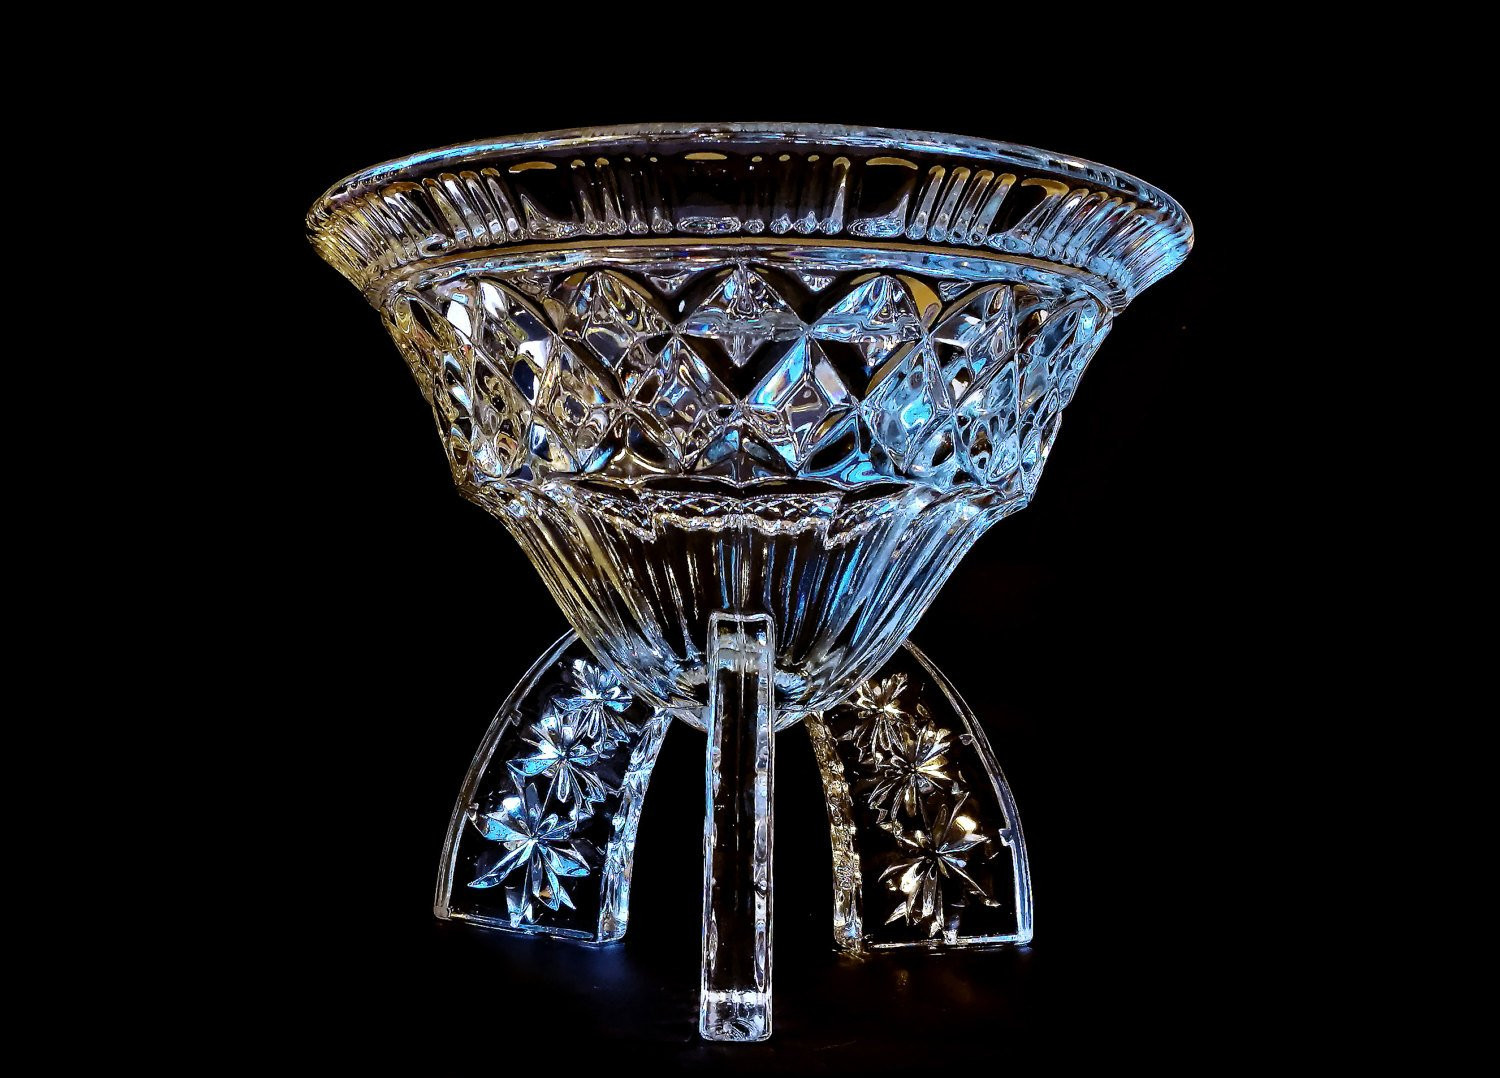 24 Spectacular Bohemia Czech Republic Lead Crystal Vase 2021 free download bohemia czech republic lead crystal vase of art deco glass vase posy bowl rose bowl rocket shape lemon etsy with dc29fc294c28ezoom